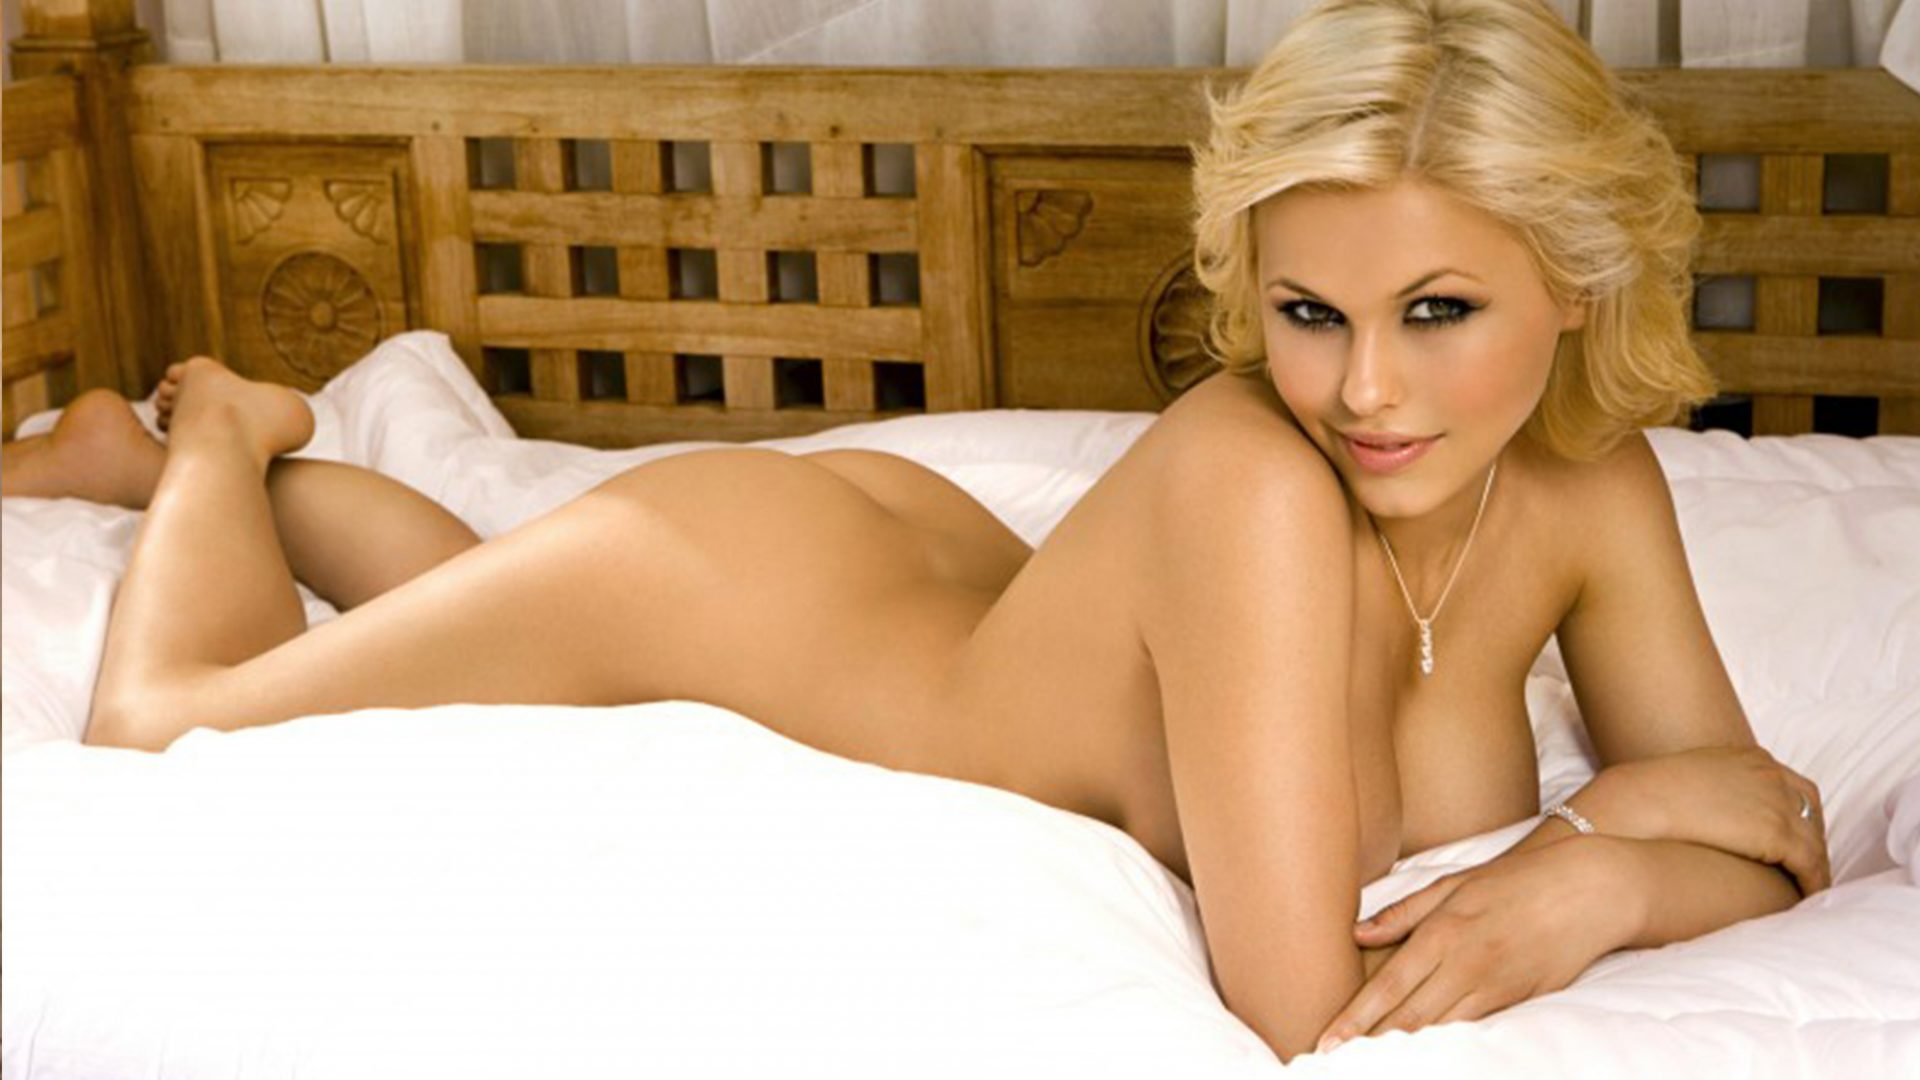 Stacy - a stunningly beautiful outcall girl